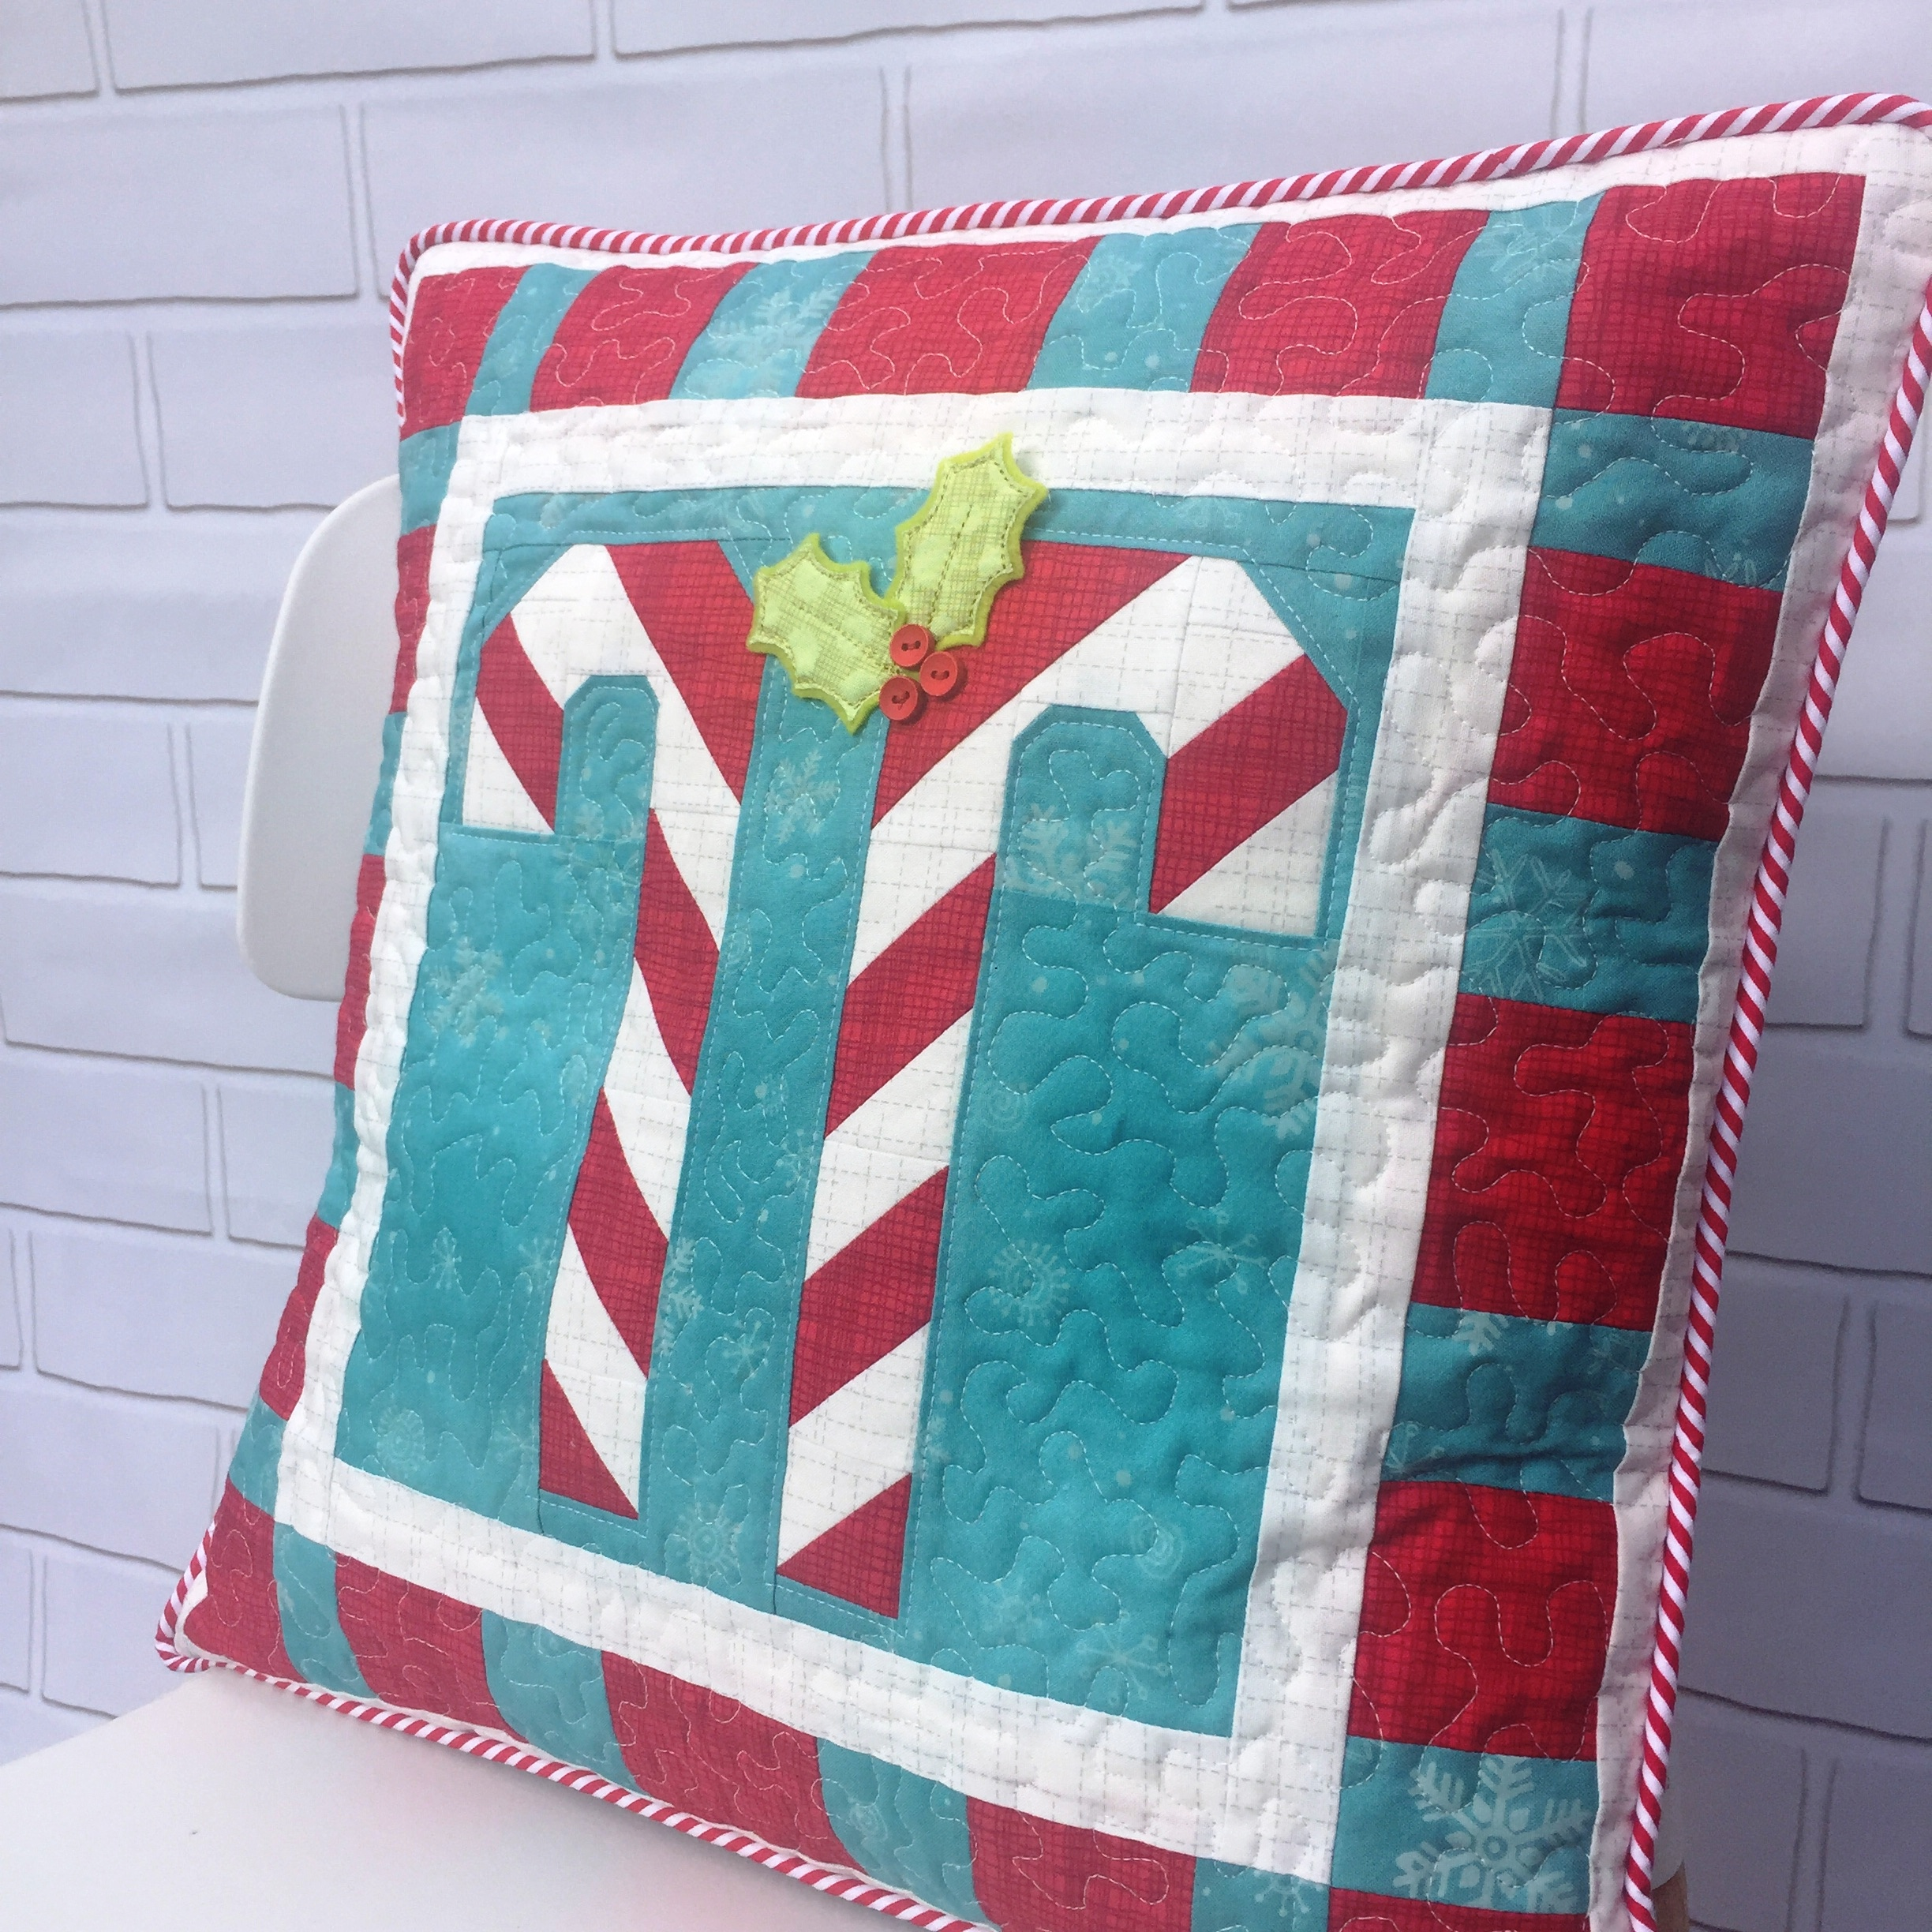 Candy Cane Cushion The Crafty Nomad